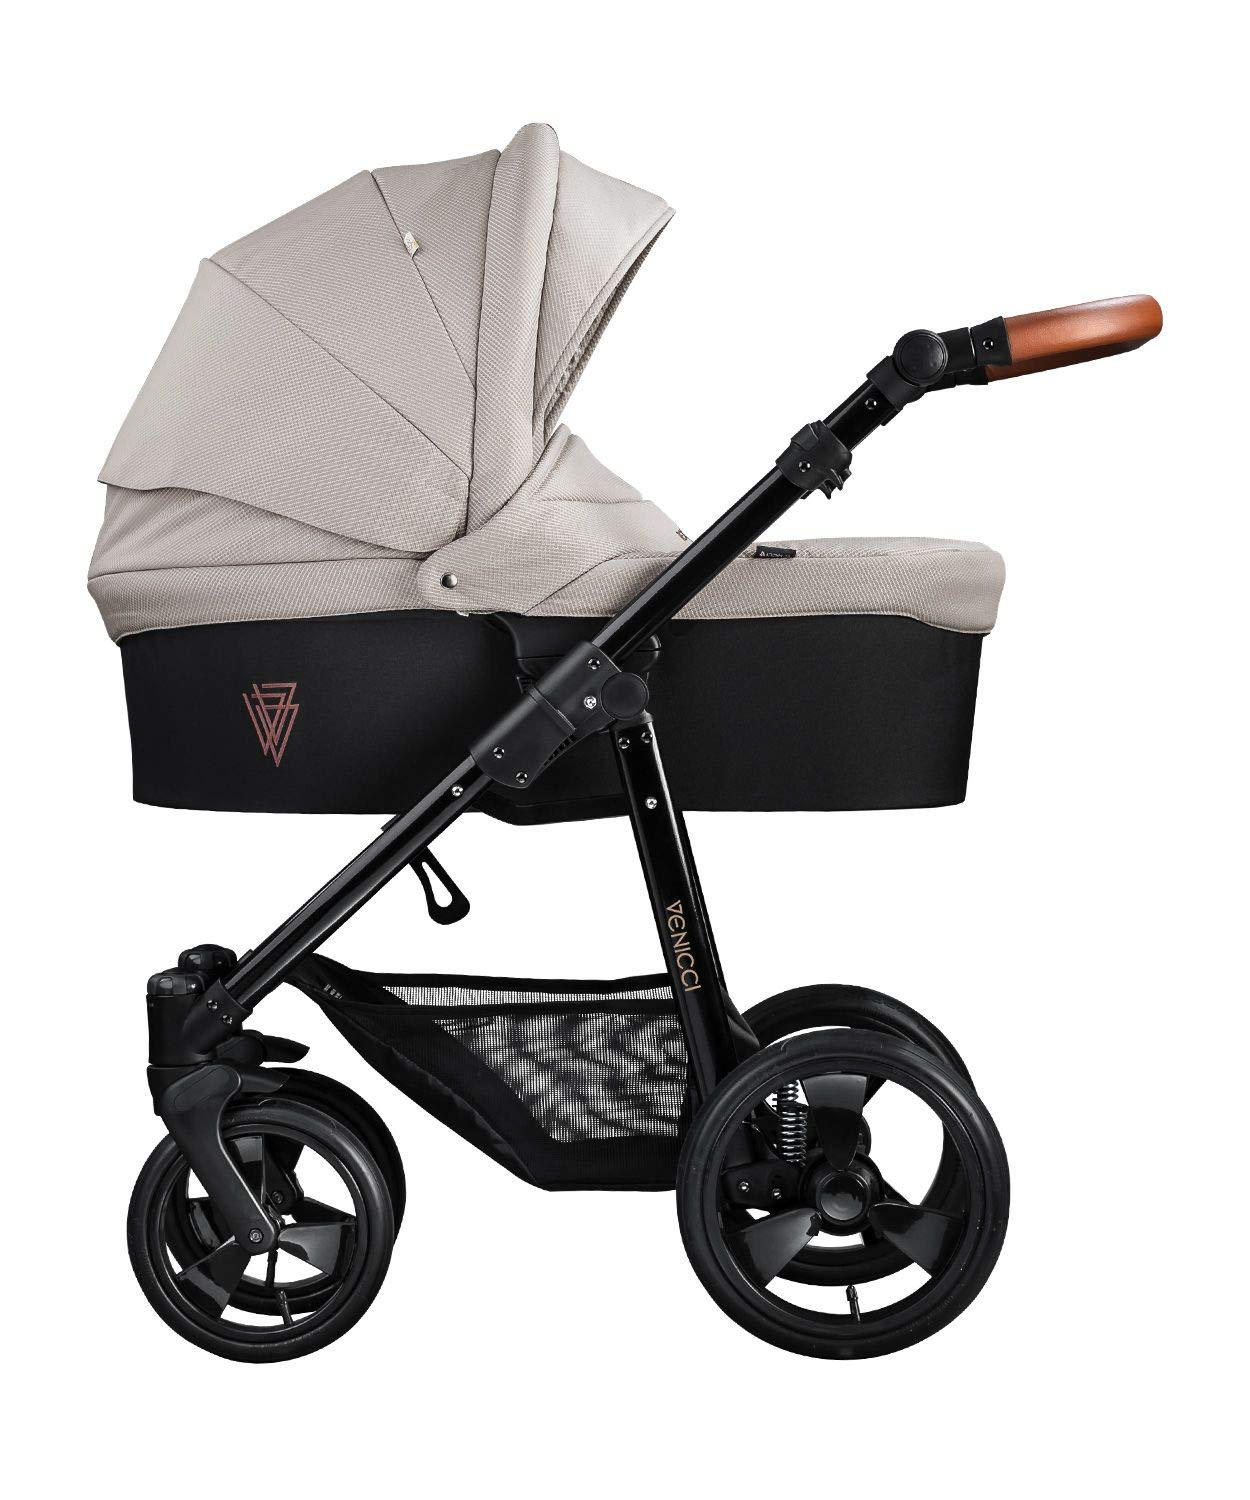 Venicci Gusto 2-in-1 Travel System - Cream - with Carrycot + Changing Bag + Footmuff + Raincover + Mosquito Net + 5-Point Harness and UV 50+ Fabric + Cup Holder  2-in-1 Pram and Pushchair with custom travel options Suitable for your baby from birth until approximately 36 months 5-point harness to enhance the safety of your child 2